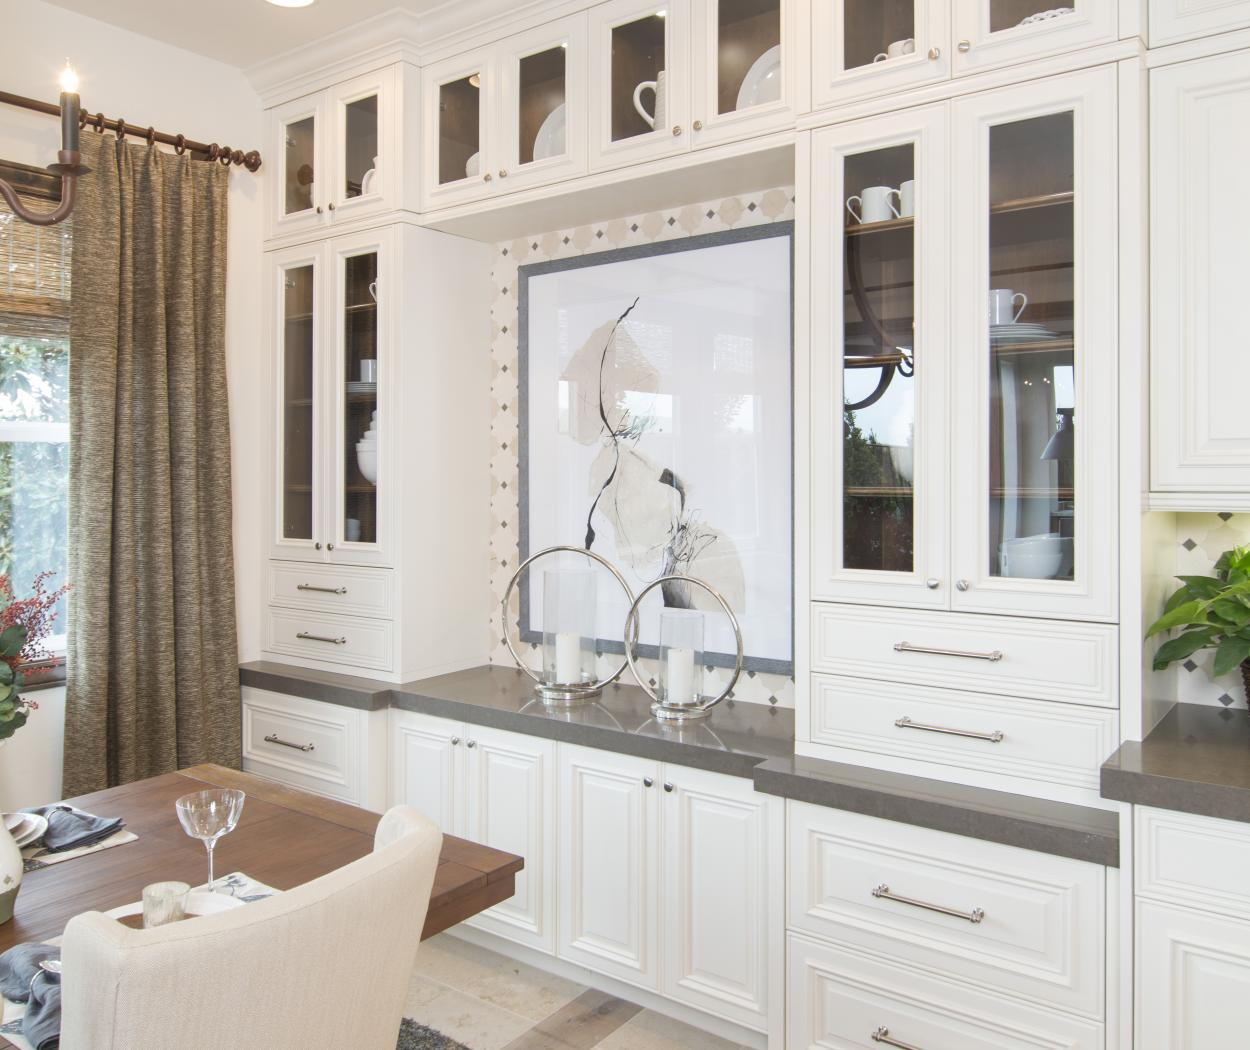 Beautiful Traditional Kitchen with Clear Glass Doors and Built-in Stained Shelves